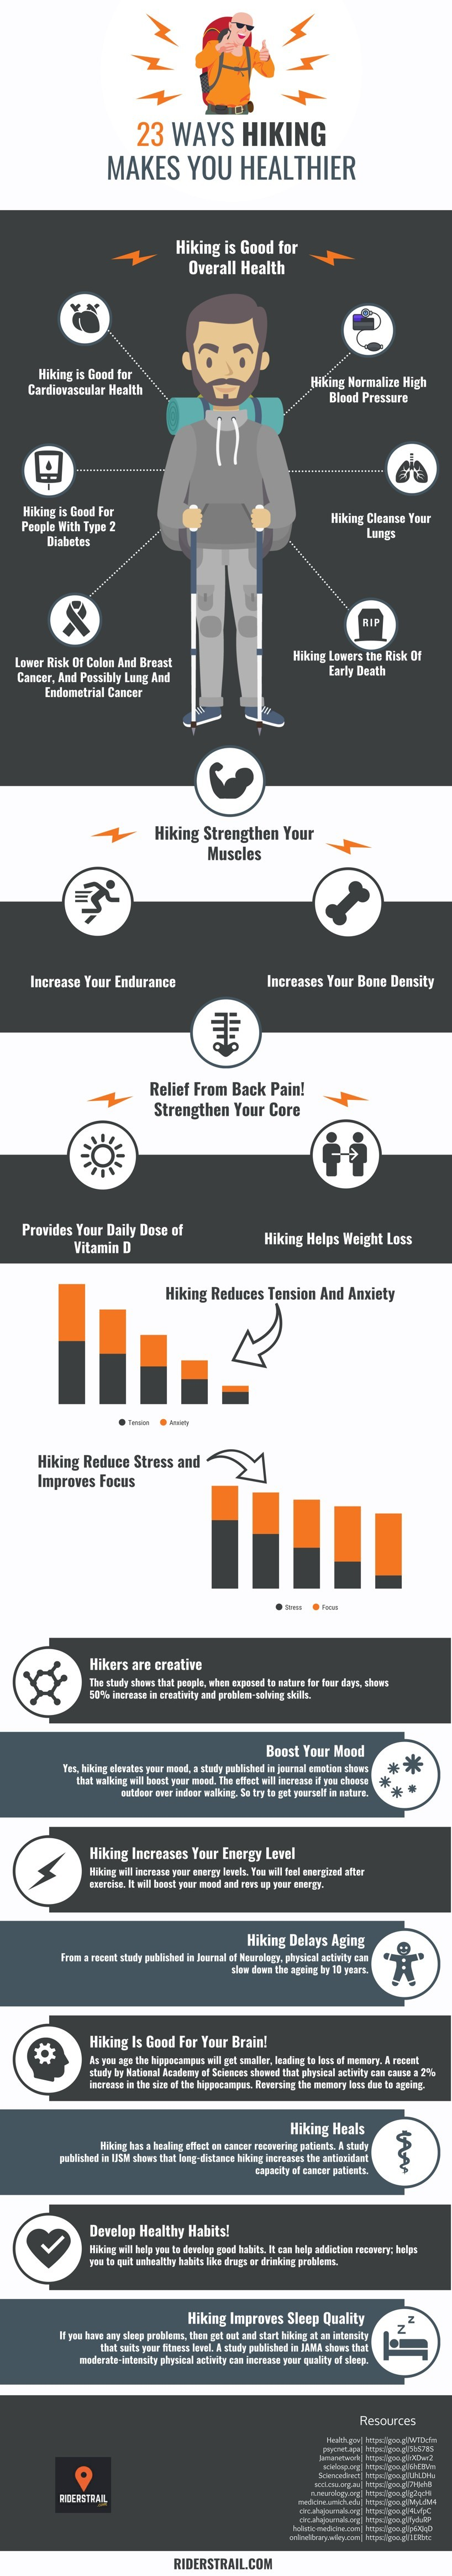 Hiking benefits: 23 ways hiking makes you healthier